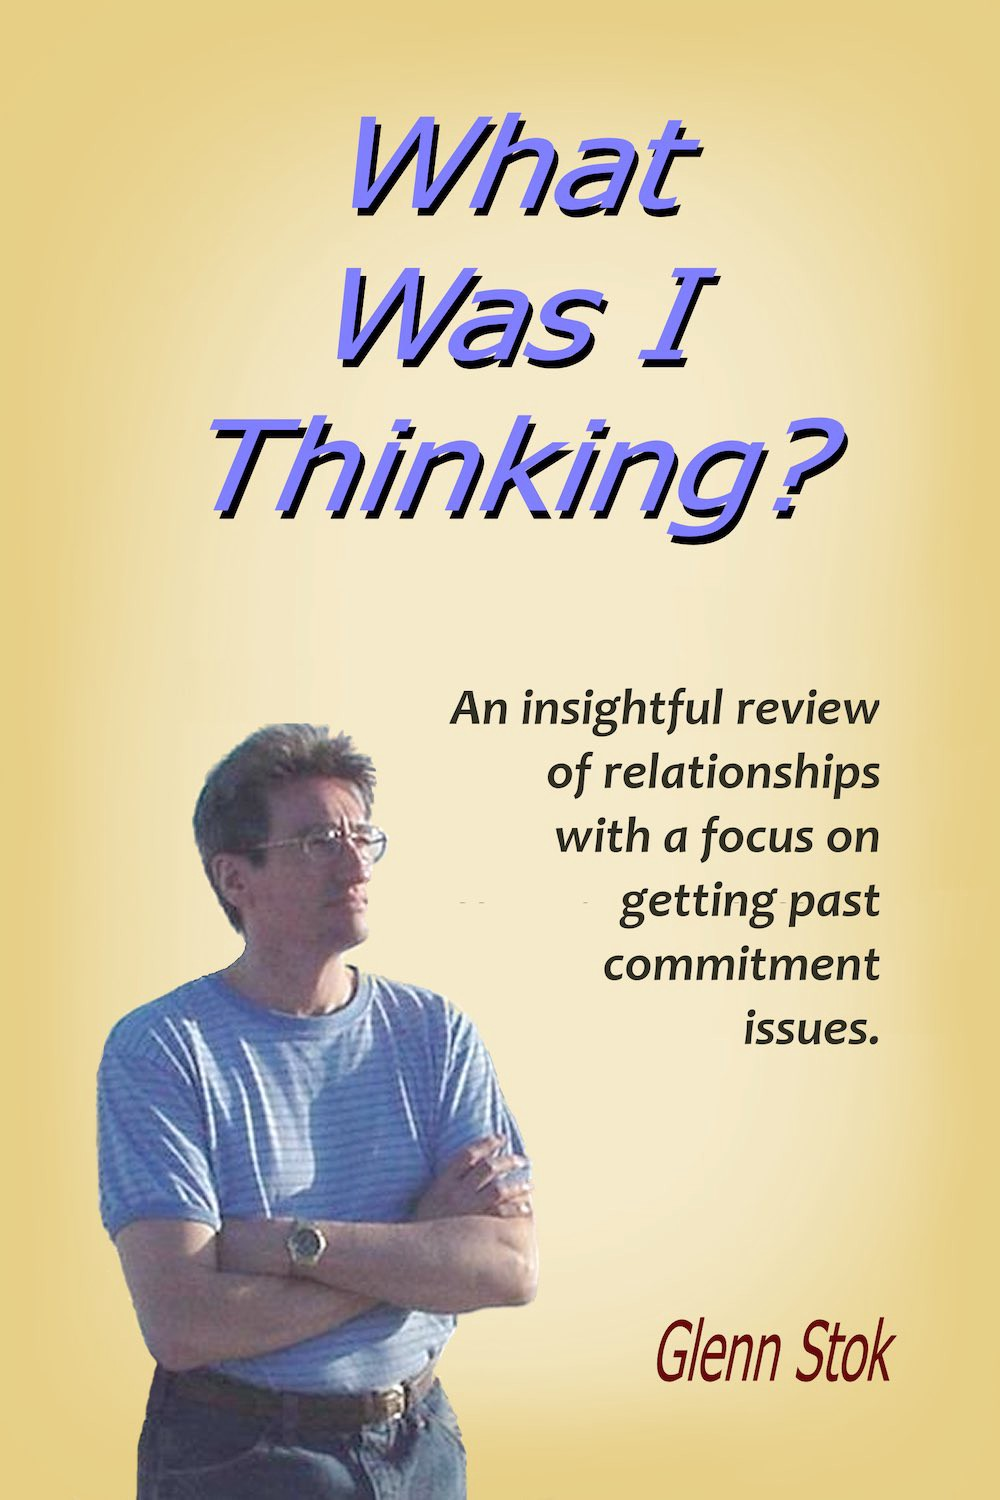 What Was I Thinking? A review of relationships. Author: Glenn Stok